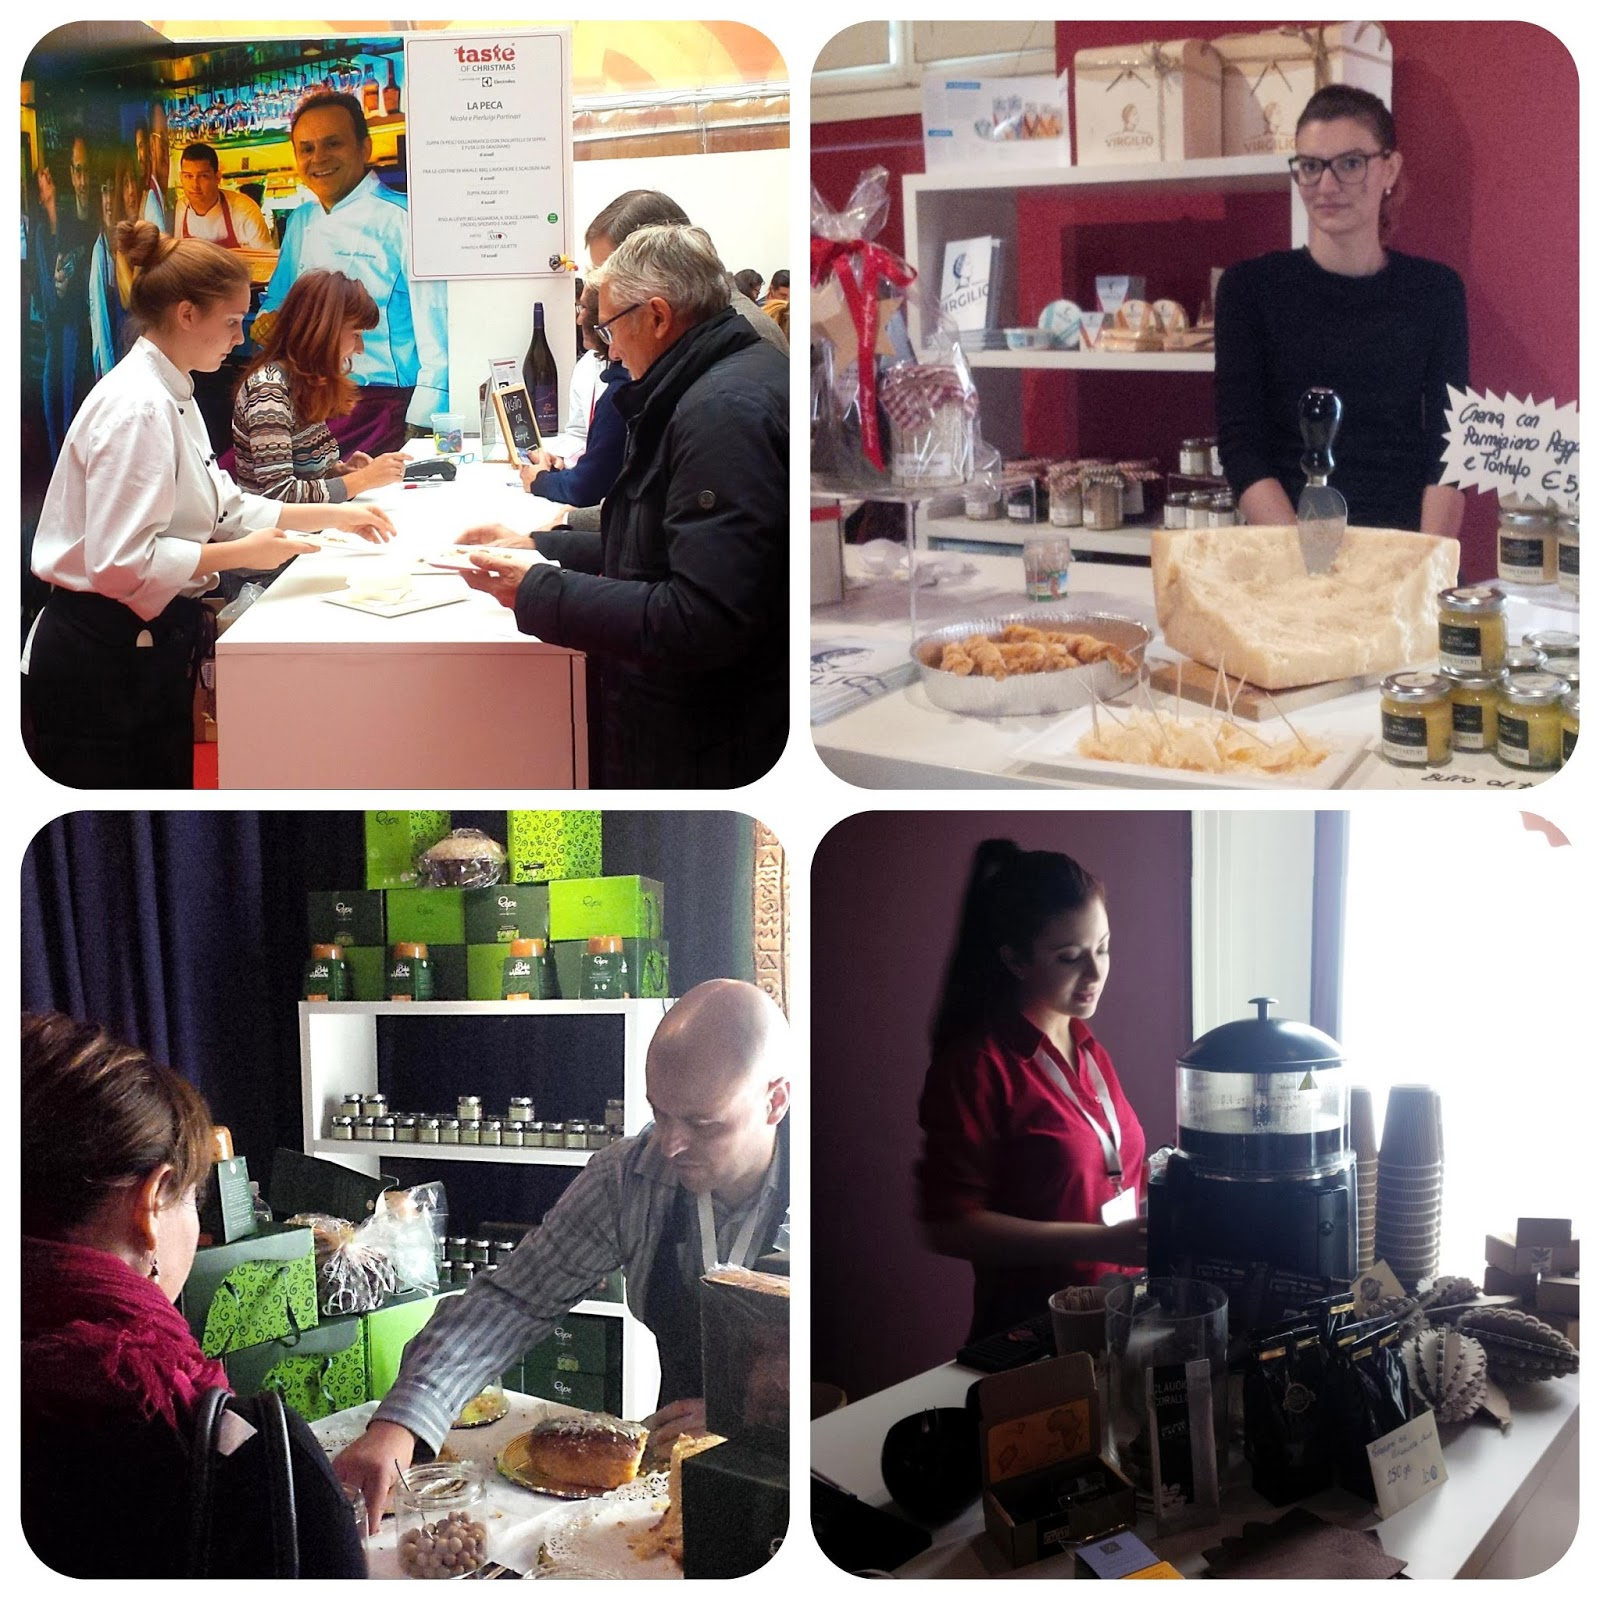 Food producers from Northern Italy exhibiting at Taste of Christmas in AMO, Verona